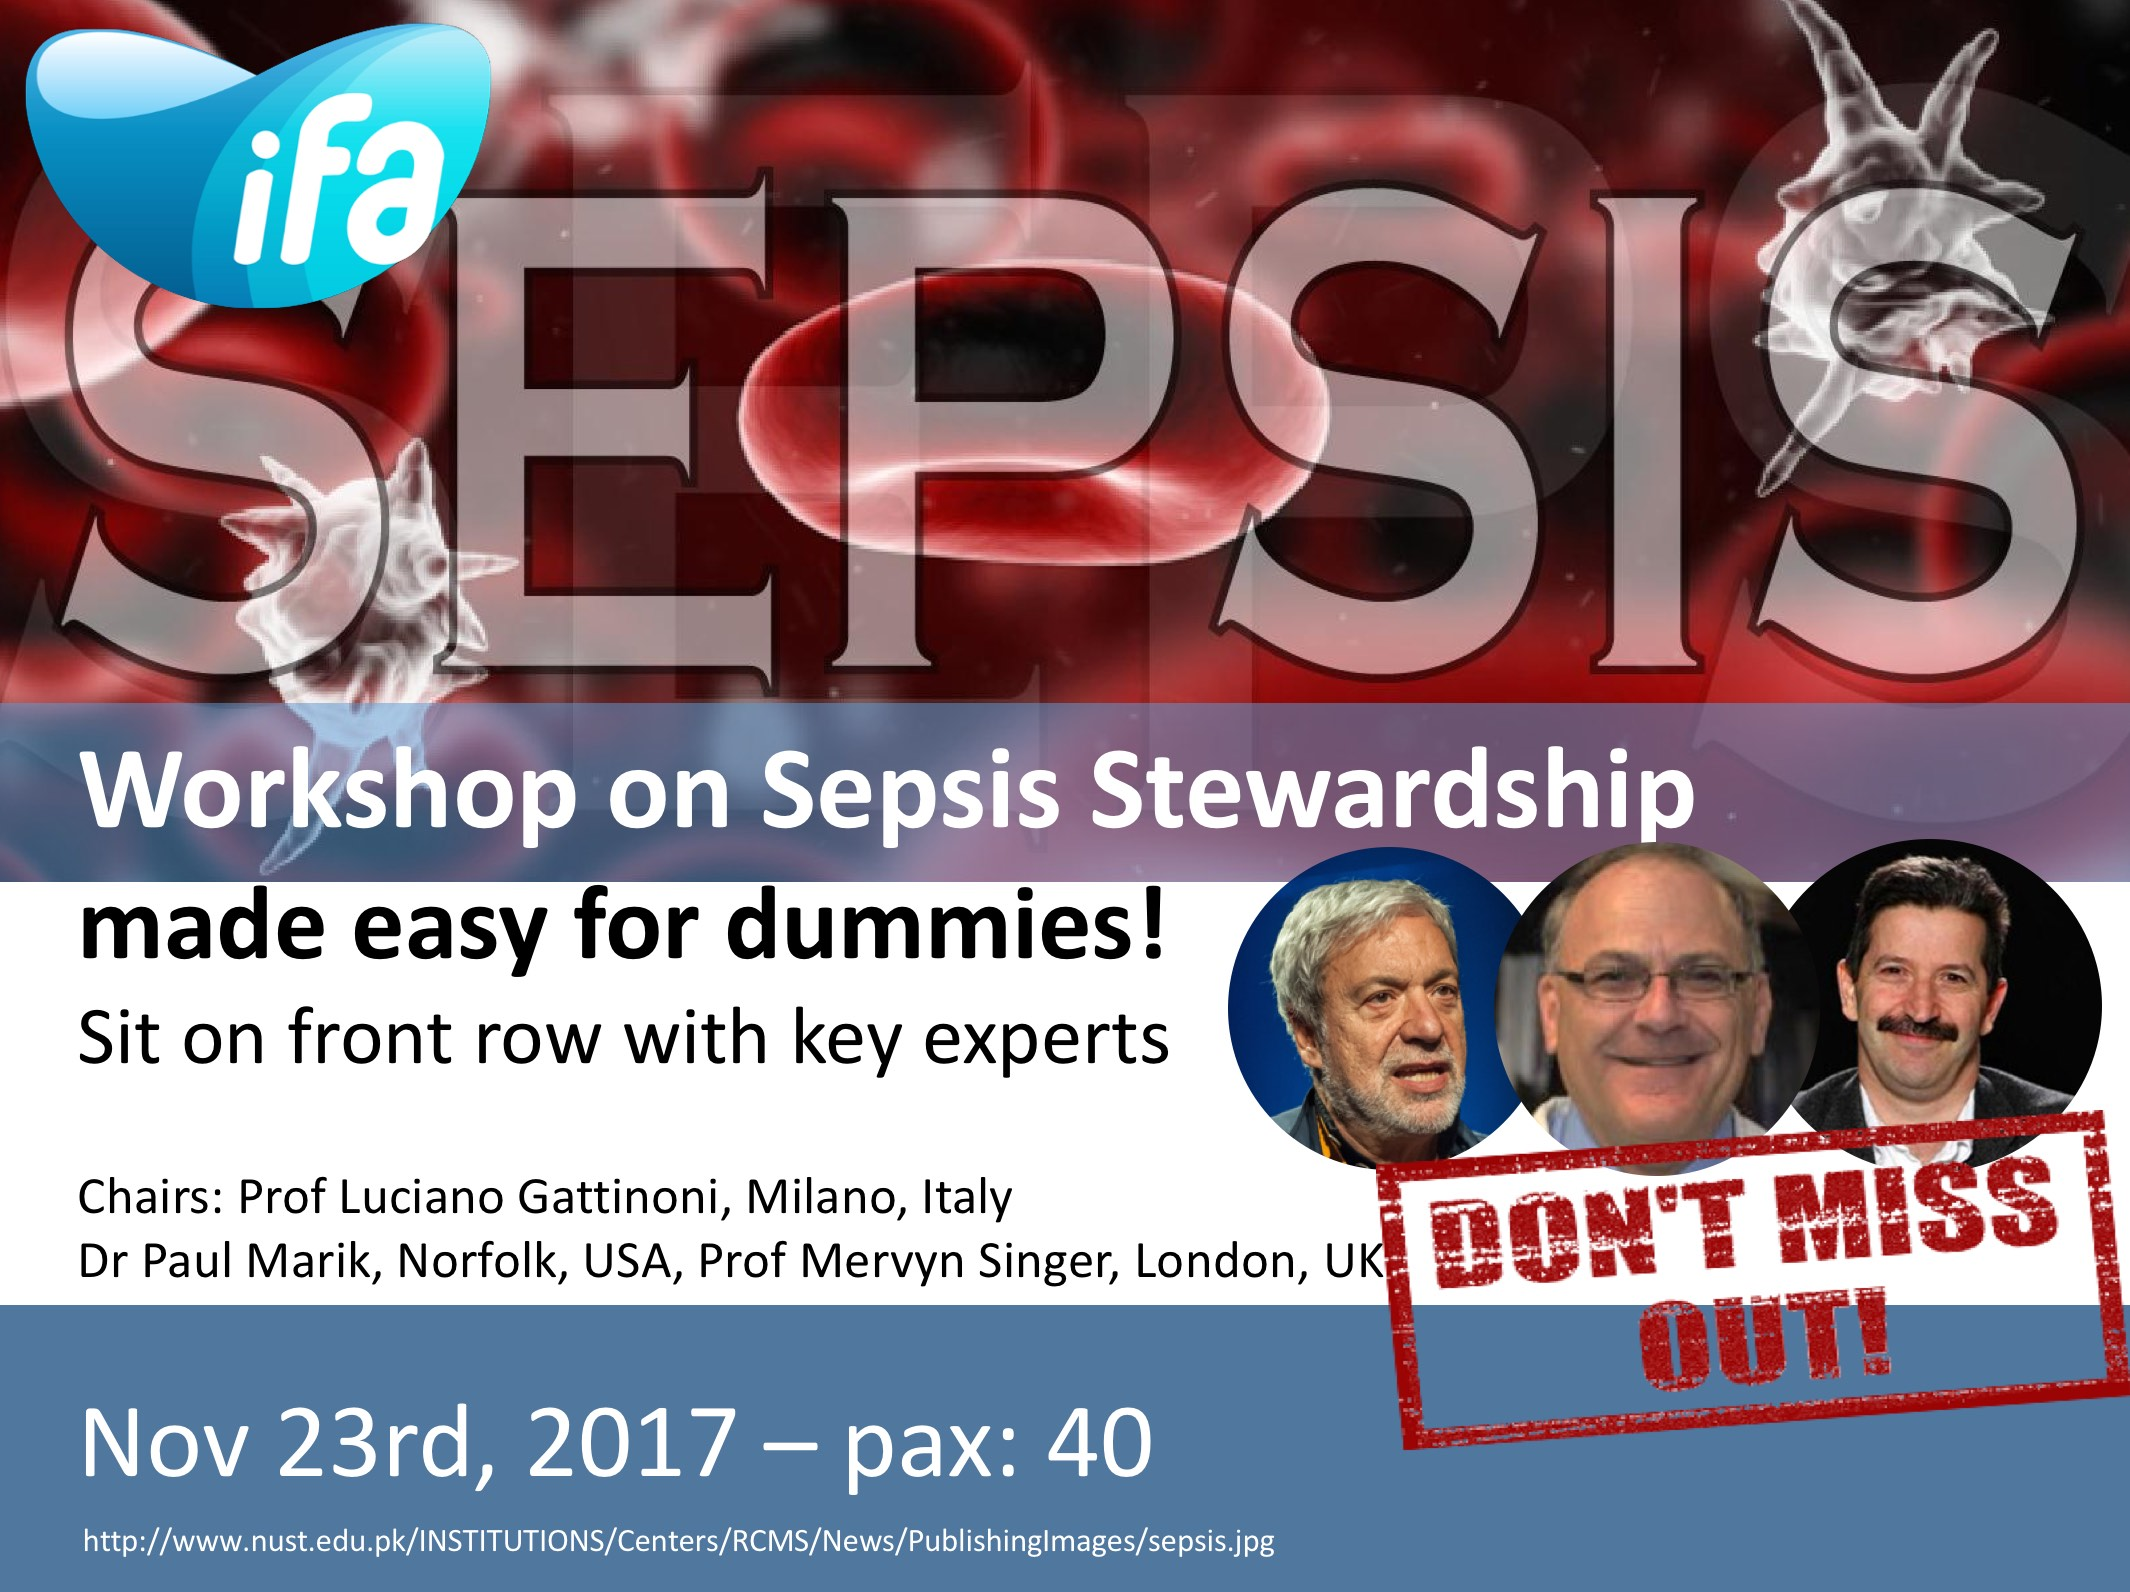 Workshop on Sepsis Stewardship